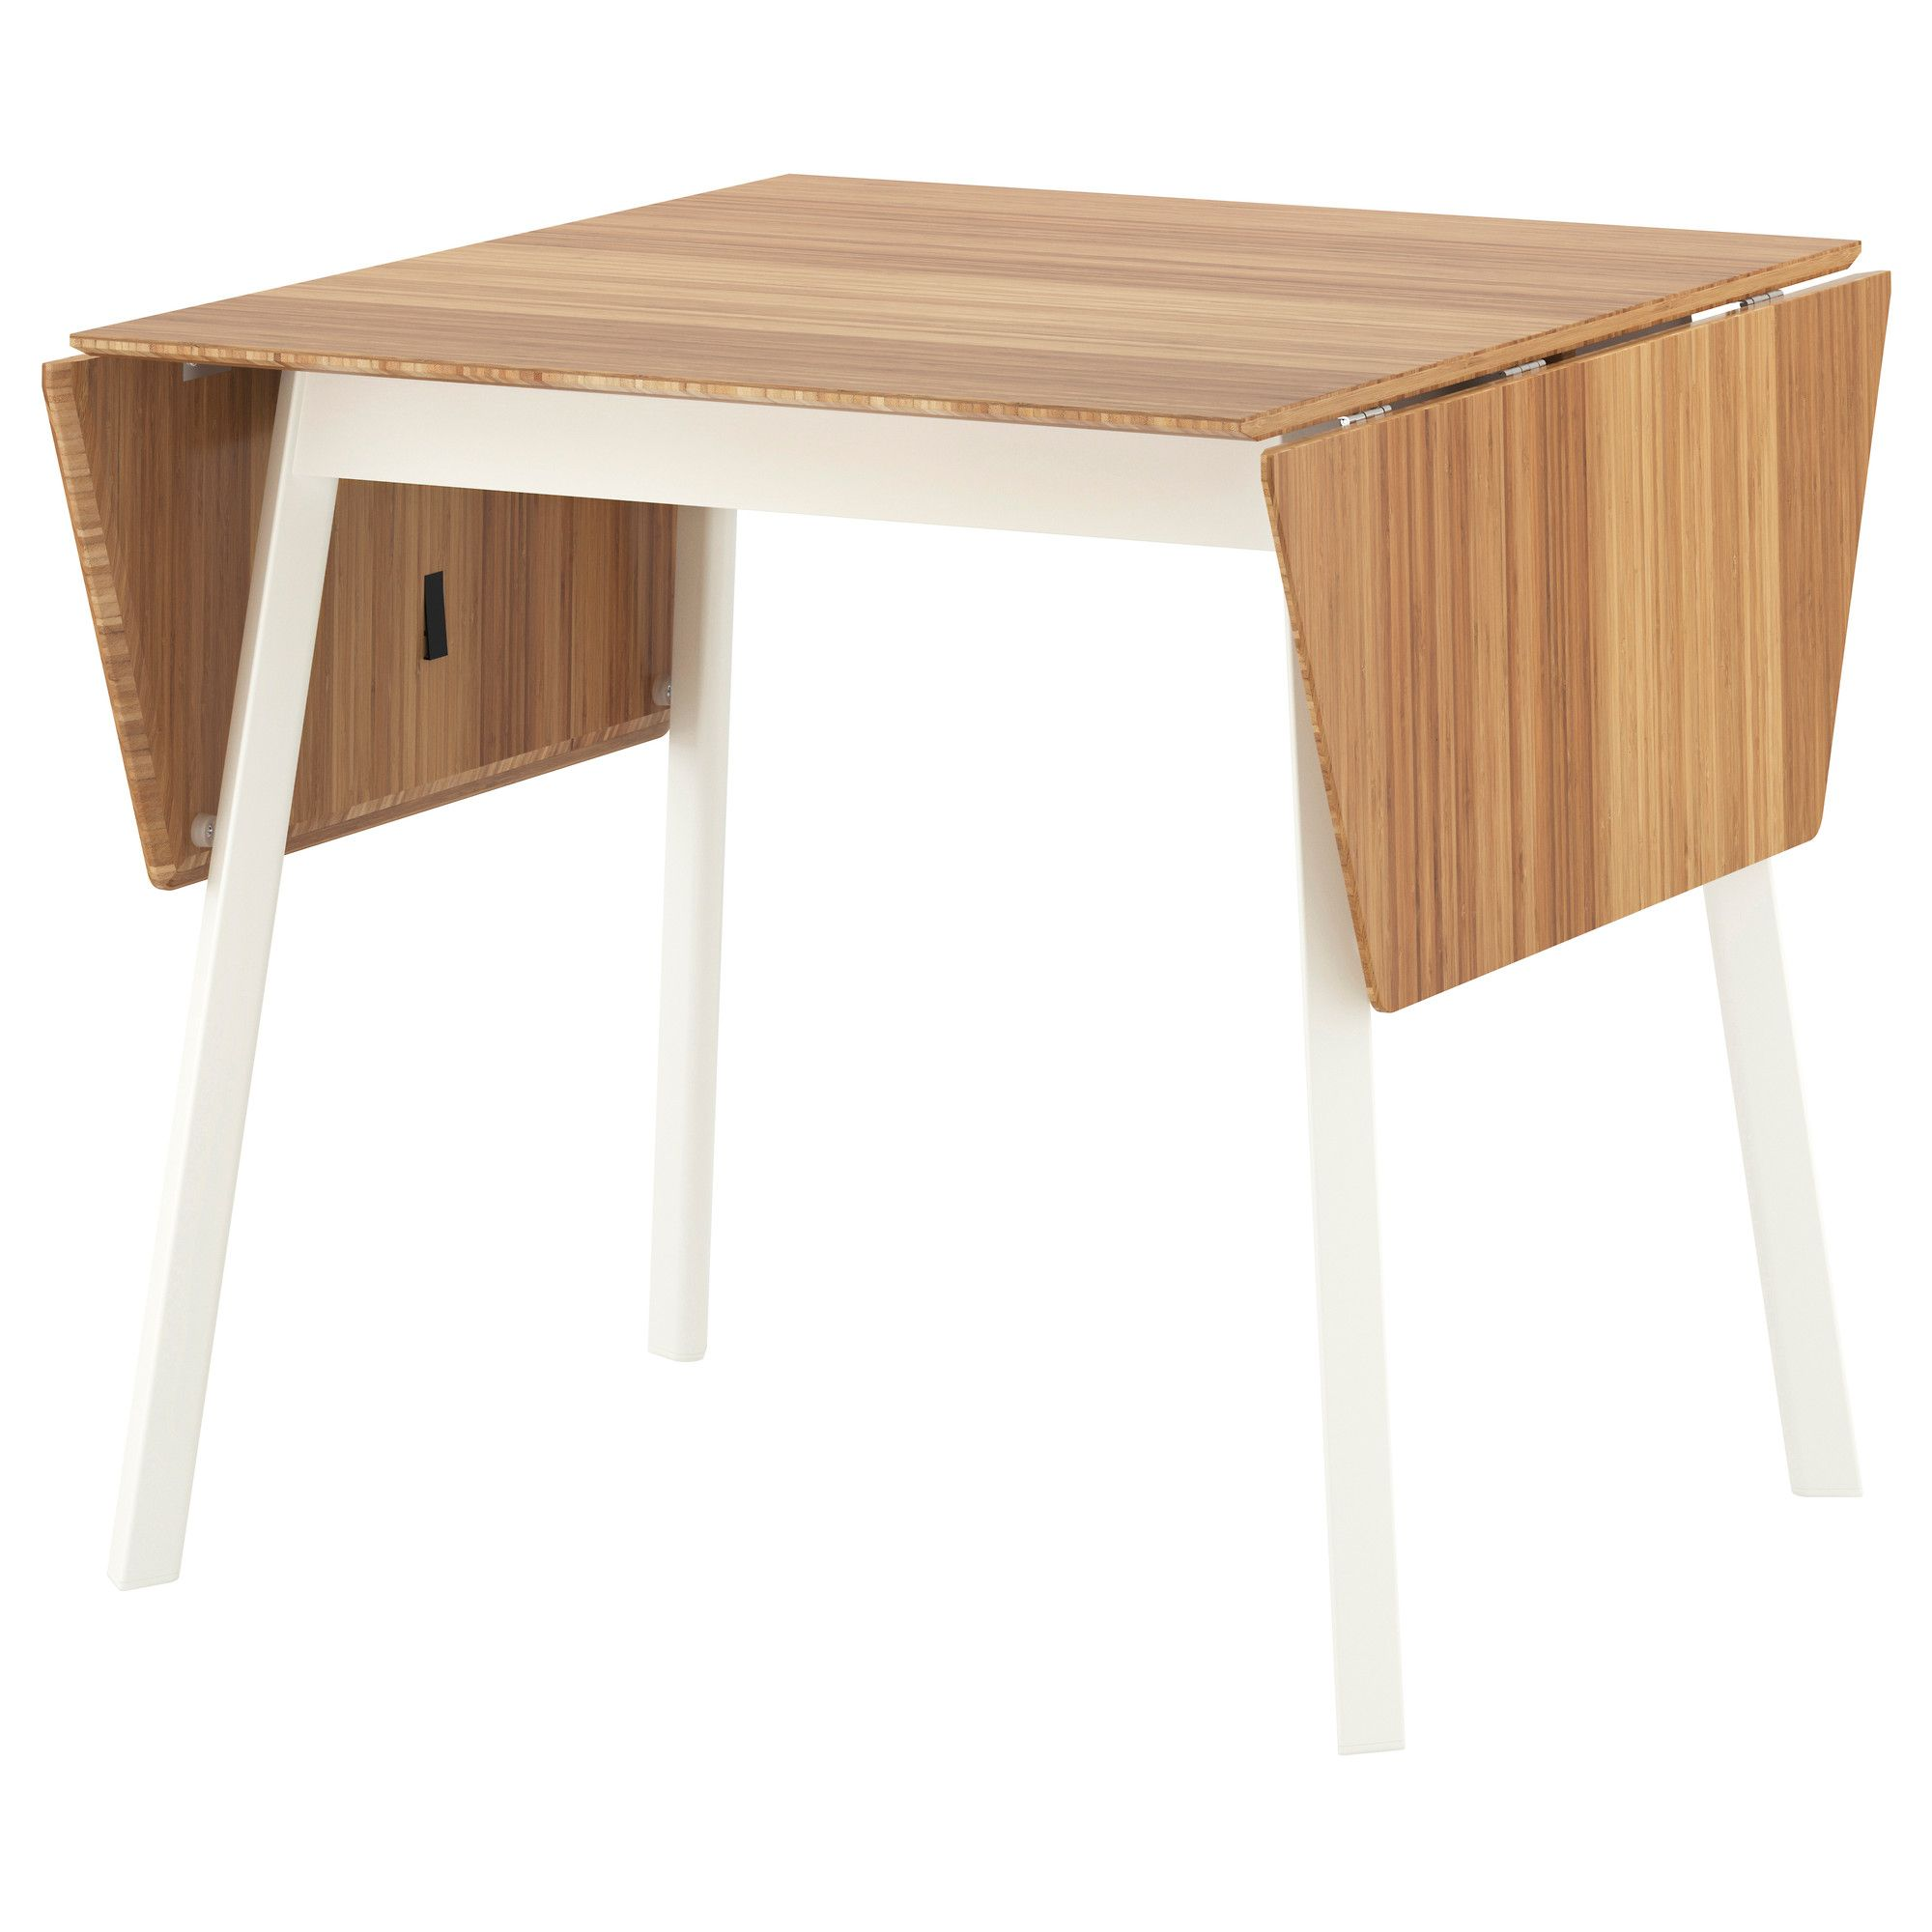 Ps 2012 Drop Leaf Table Bamboo White 29 1 8 41 3 4 54 3 8x31 1